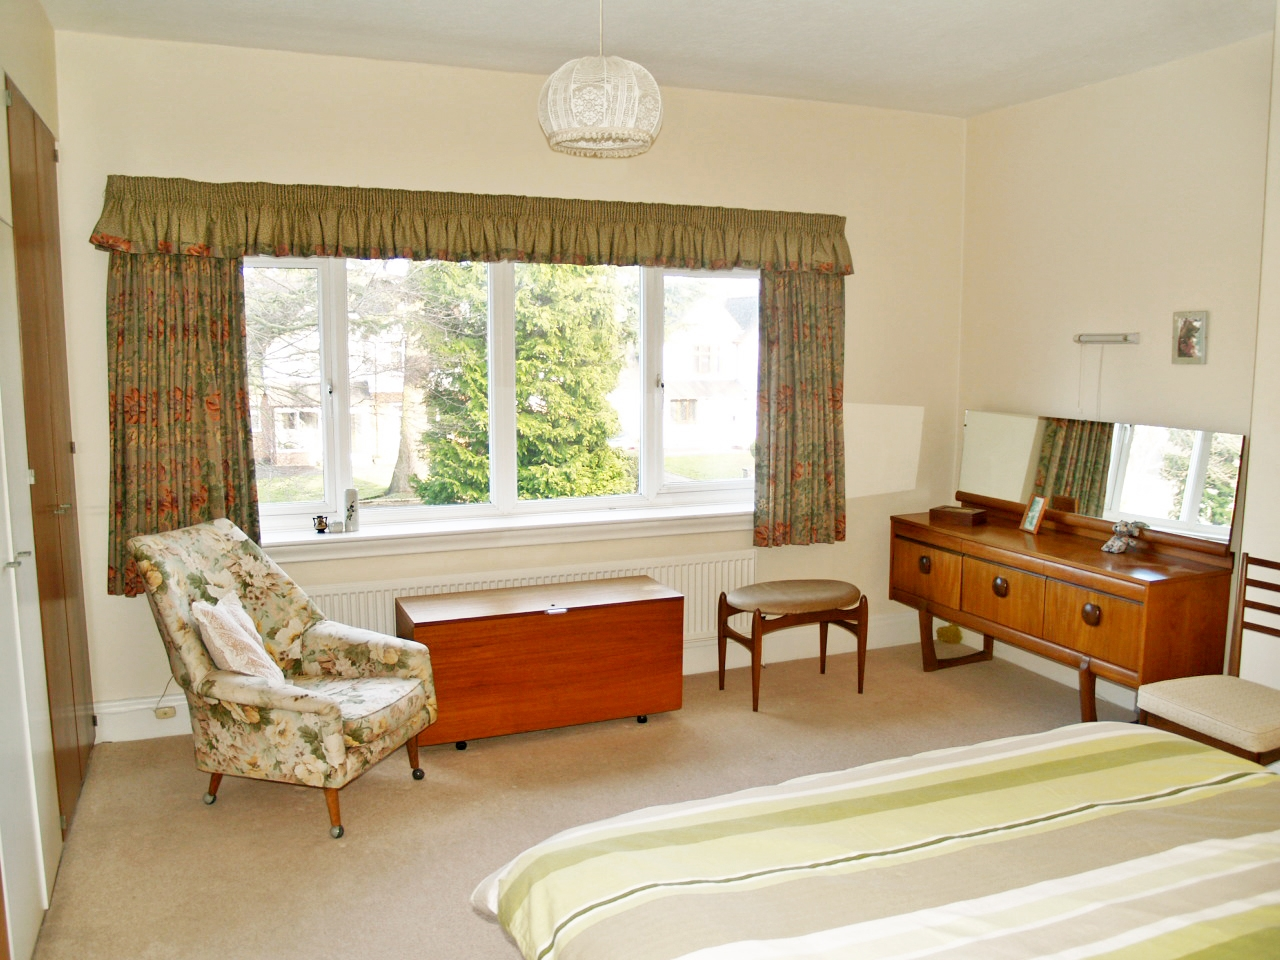 4 bedroom semi detached house SSTC in Solihull - photograph 10.